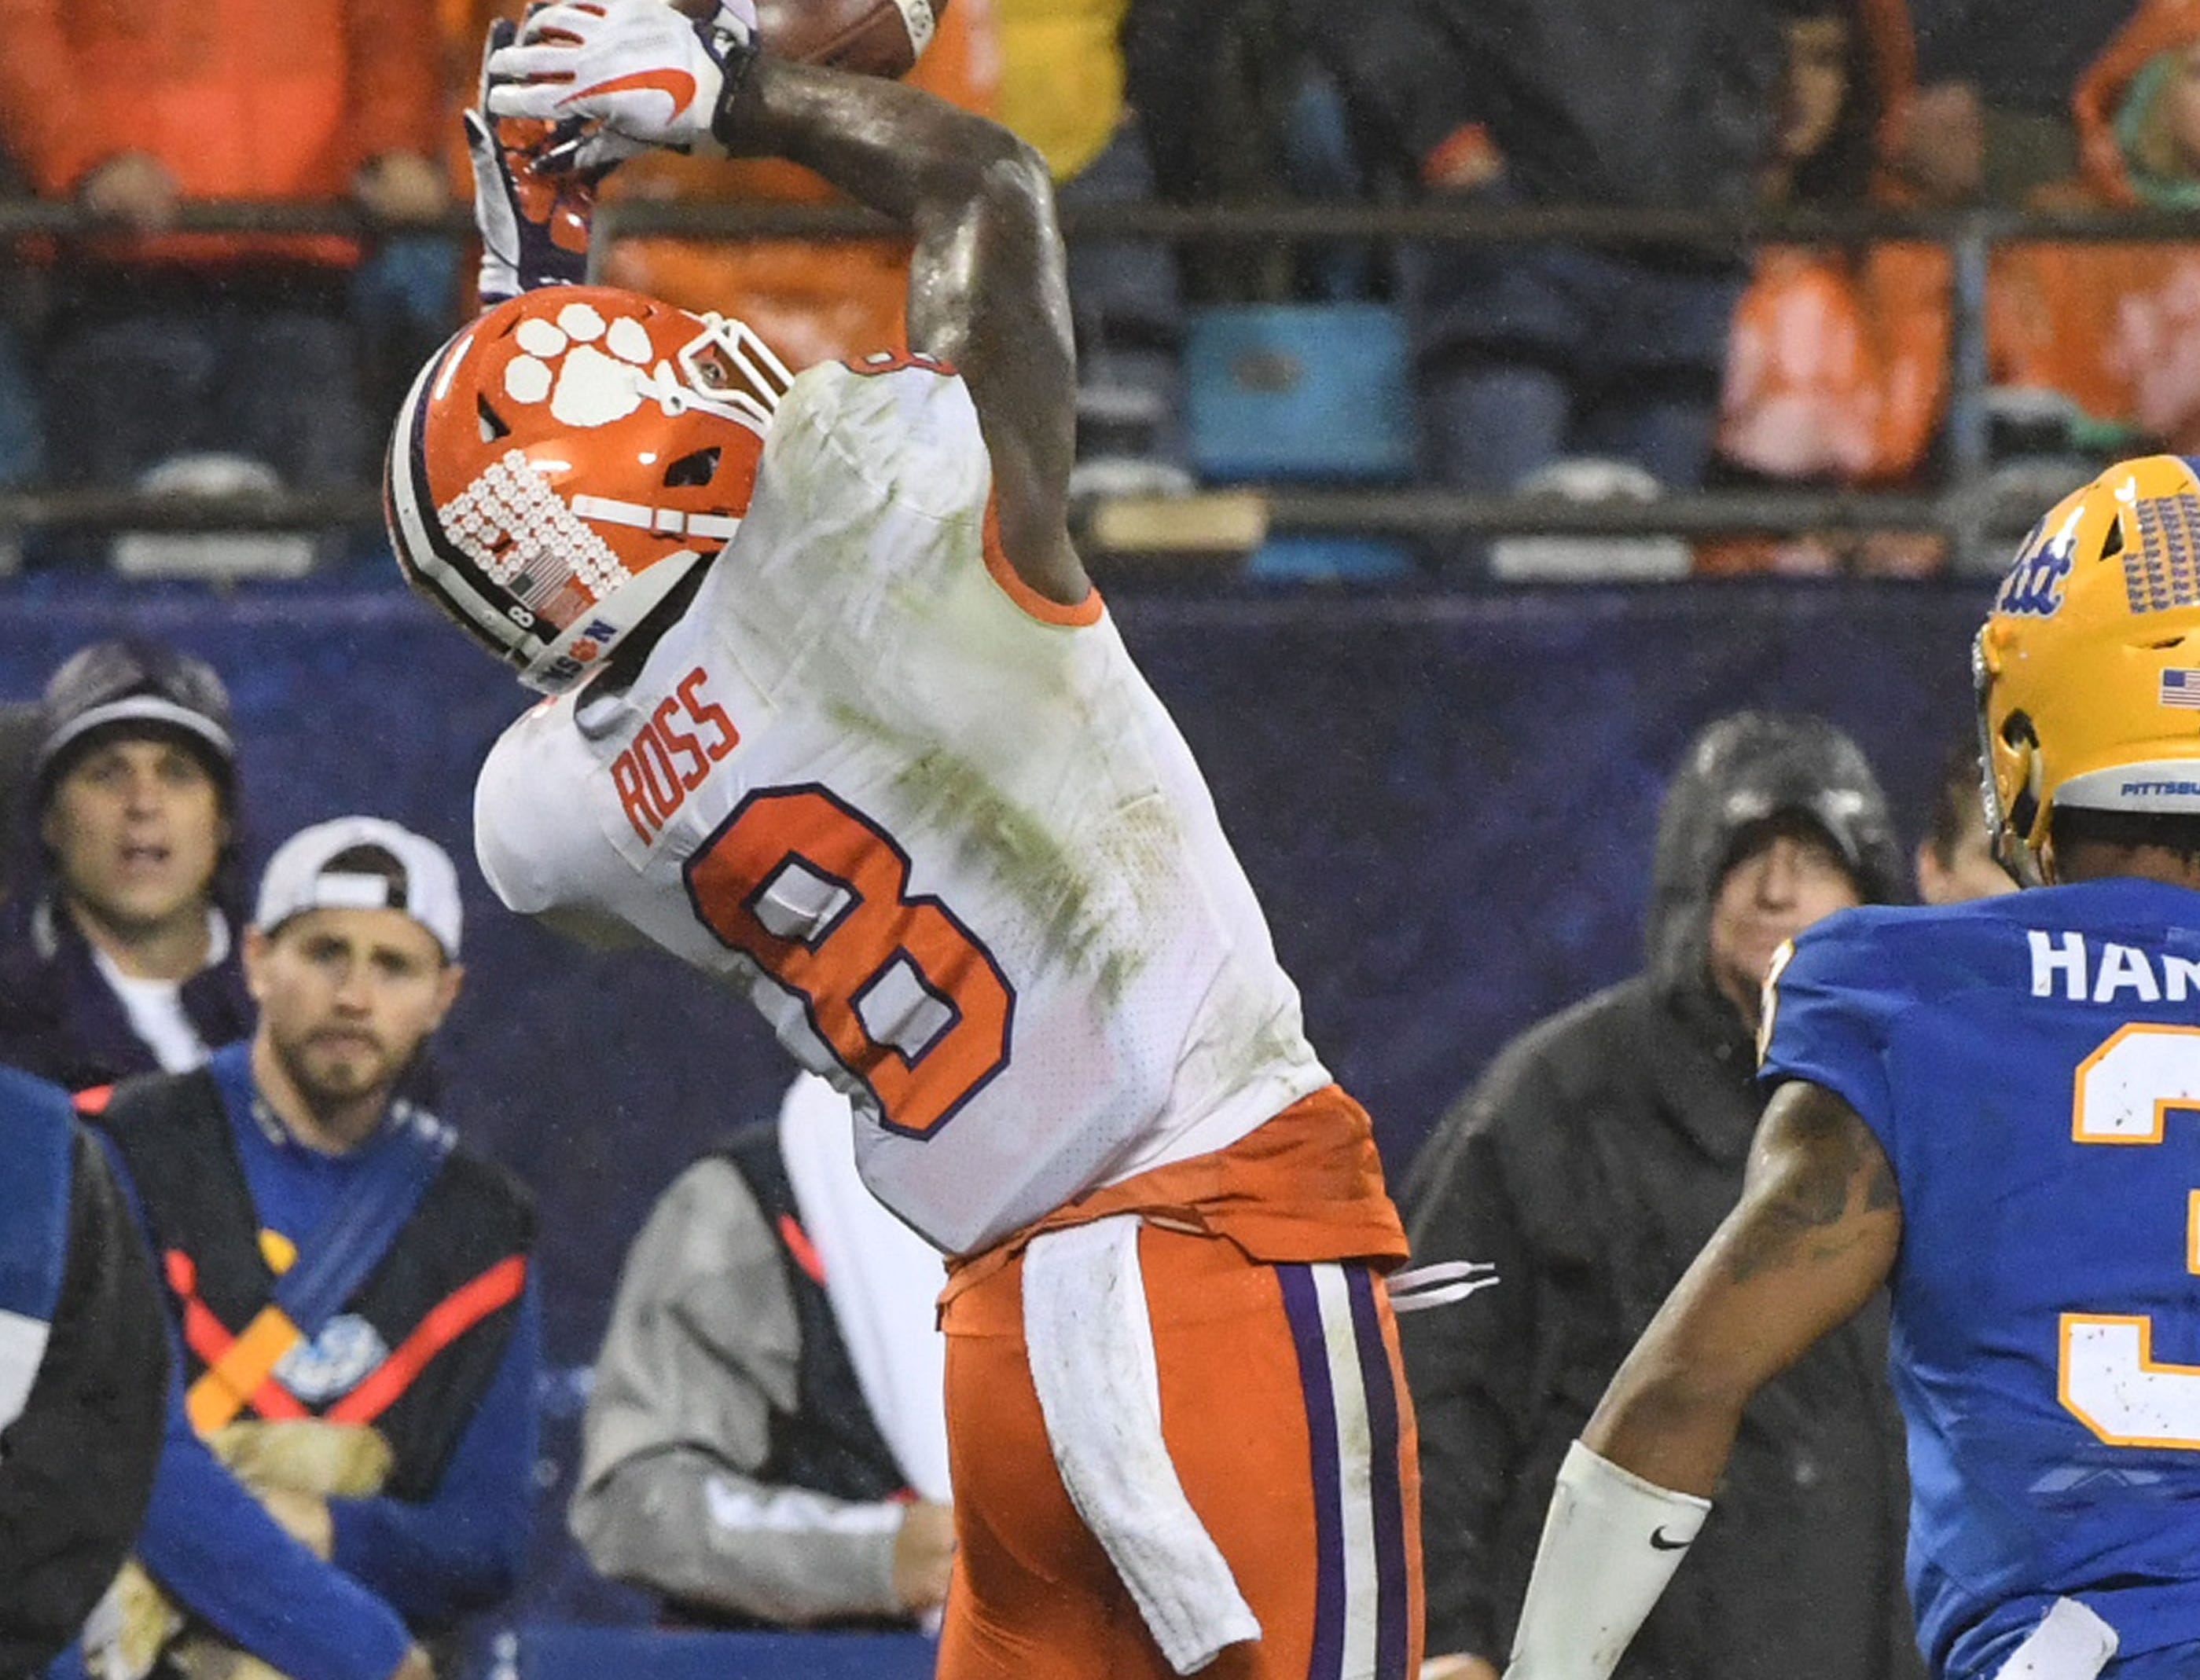 Clemson wide receiver Justyn Ross (8) catches a ball against Pittsburgh during the third quarter of the Dr. Pepper ACC football championship at Bank of America Stadium in Charlotte, N.C. on Saturday, December 1, 2018.